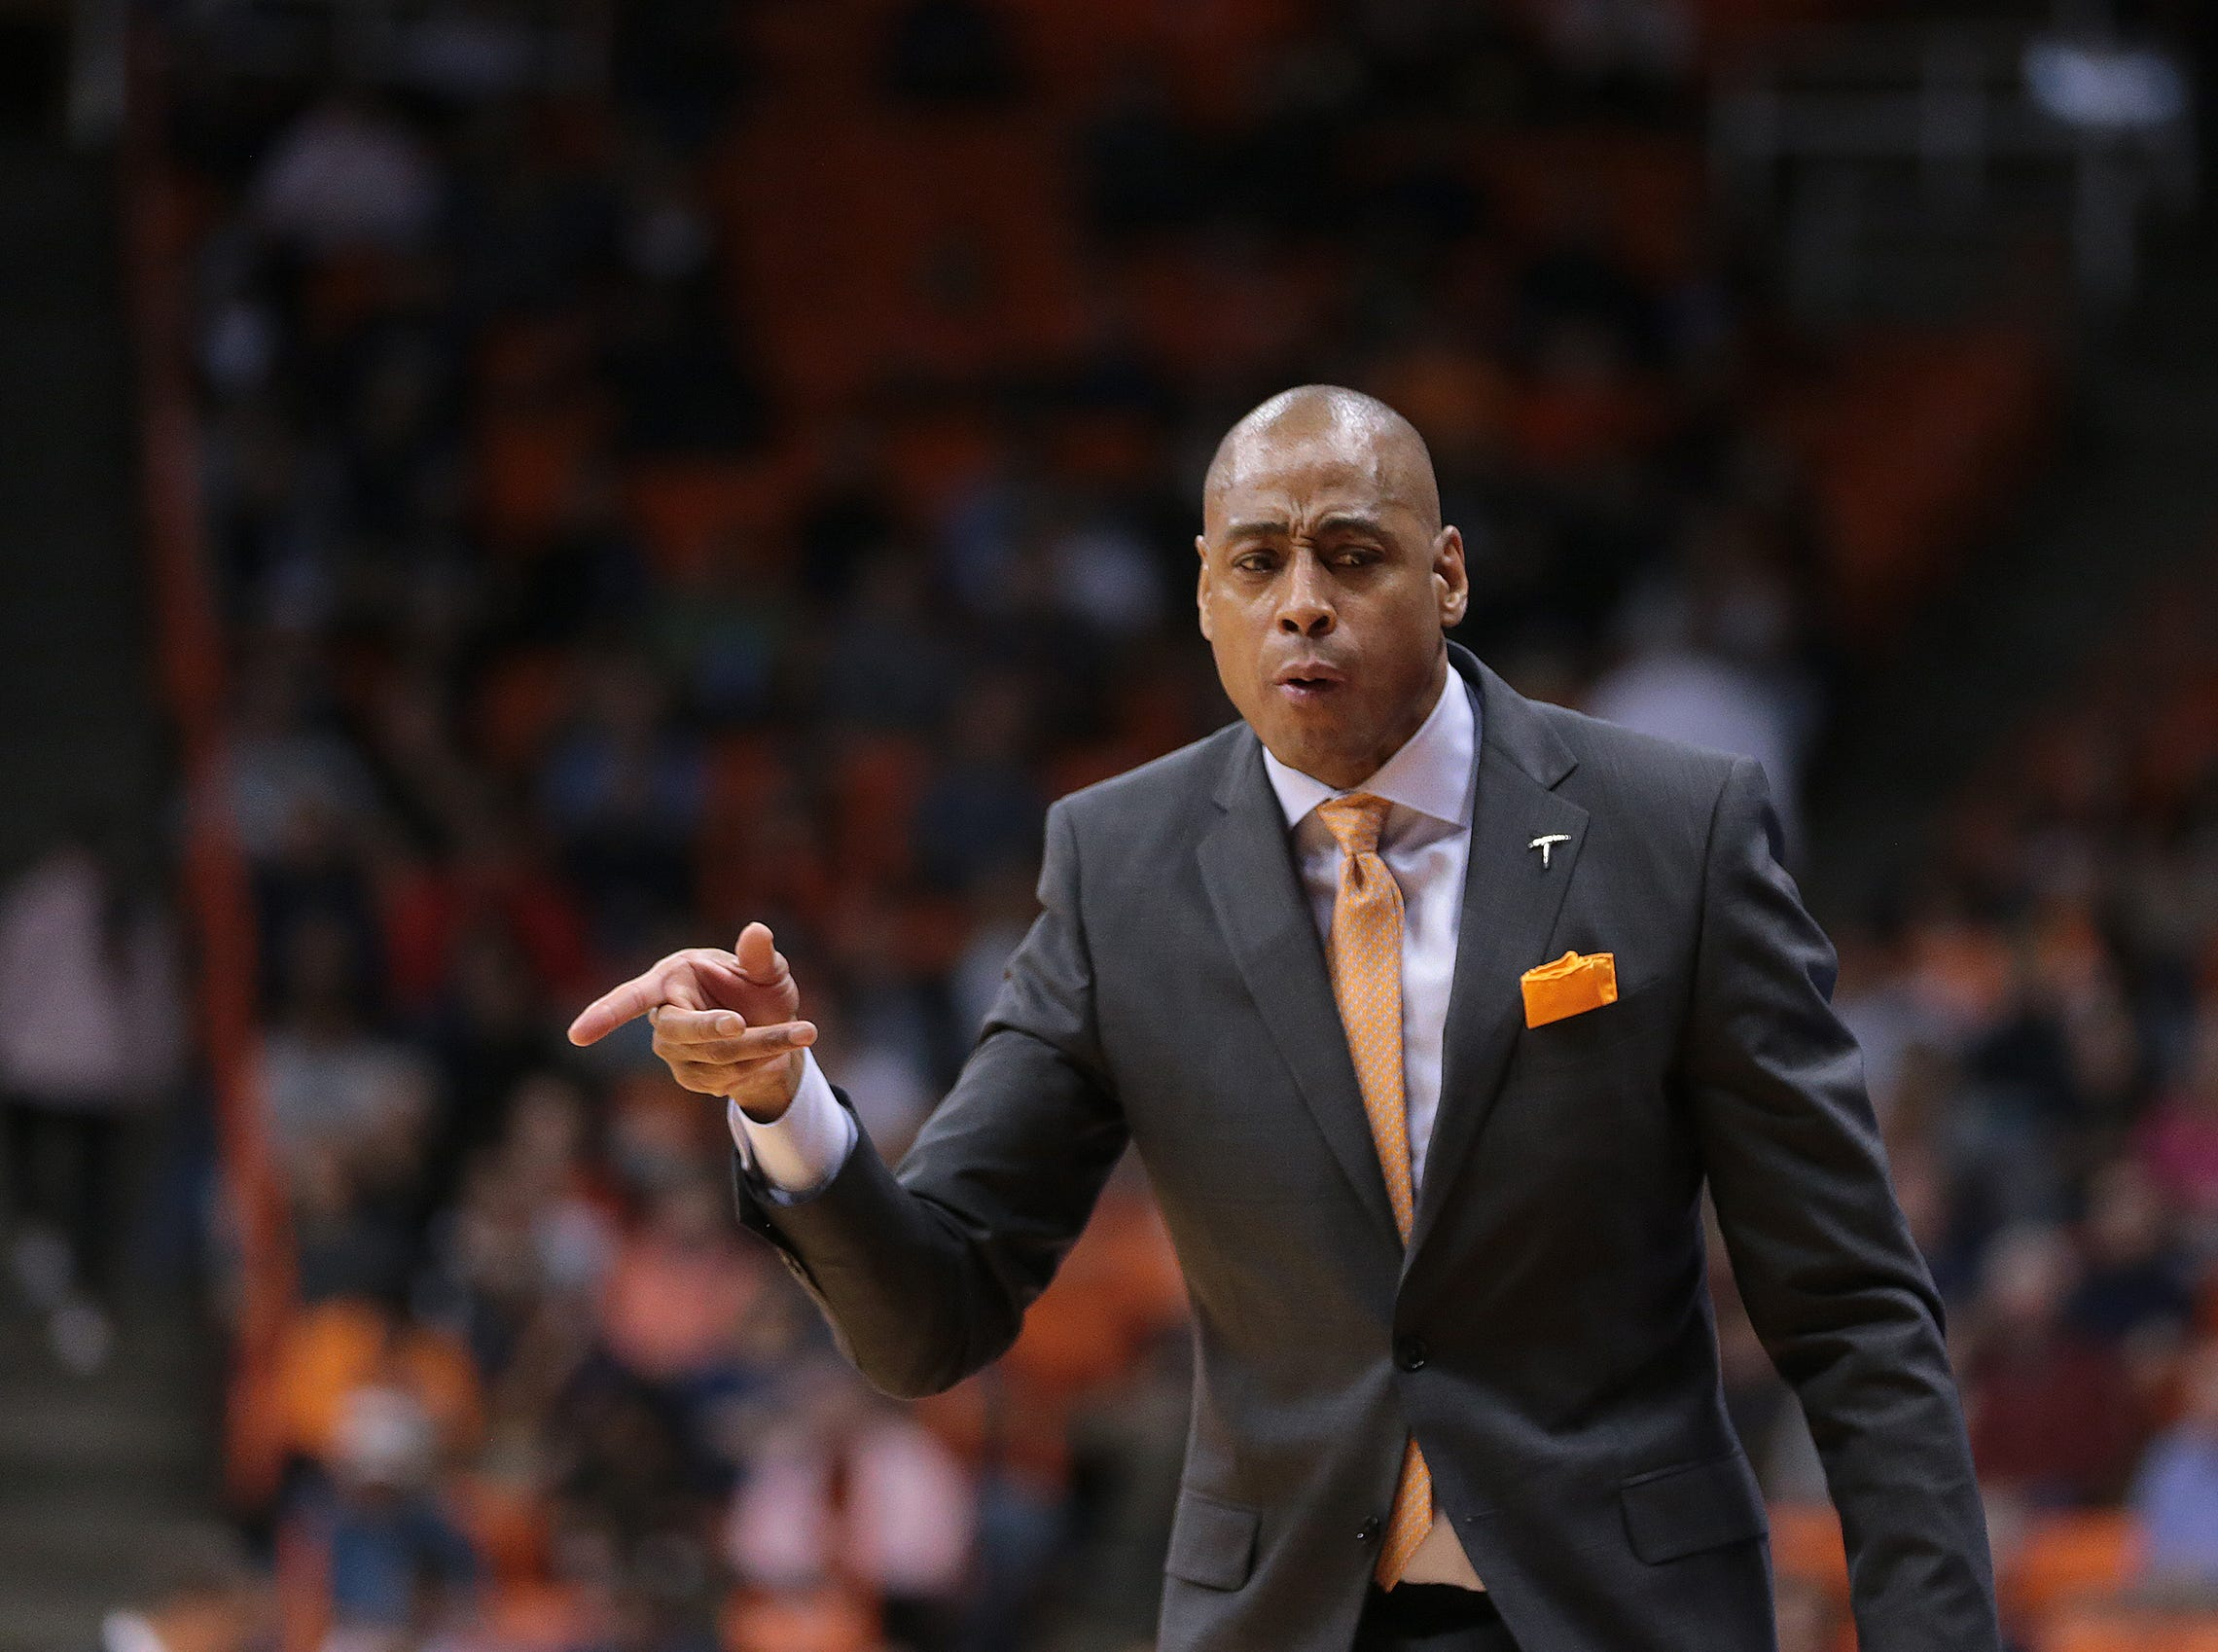 UTEP battled NMSU at the Don Haskins Center. NMSU held on to win the game 62-58.